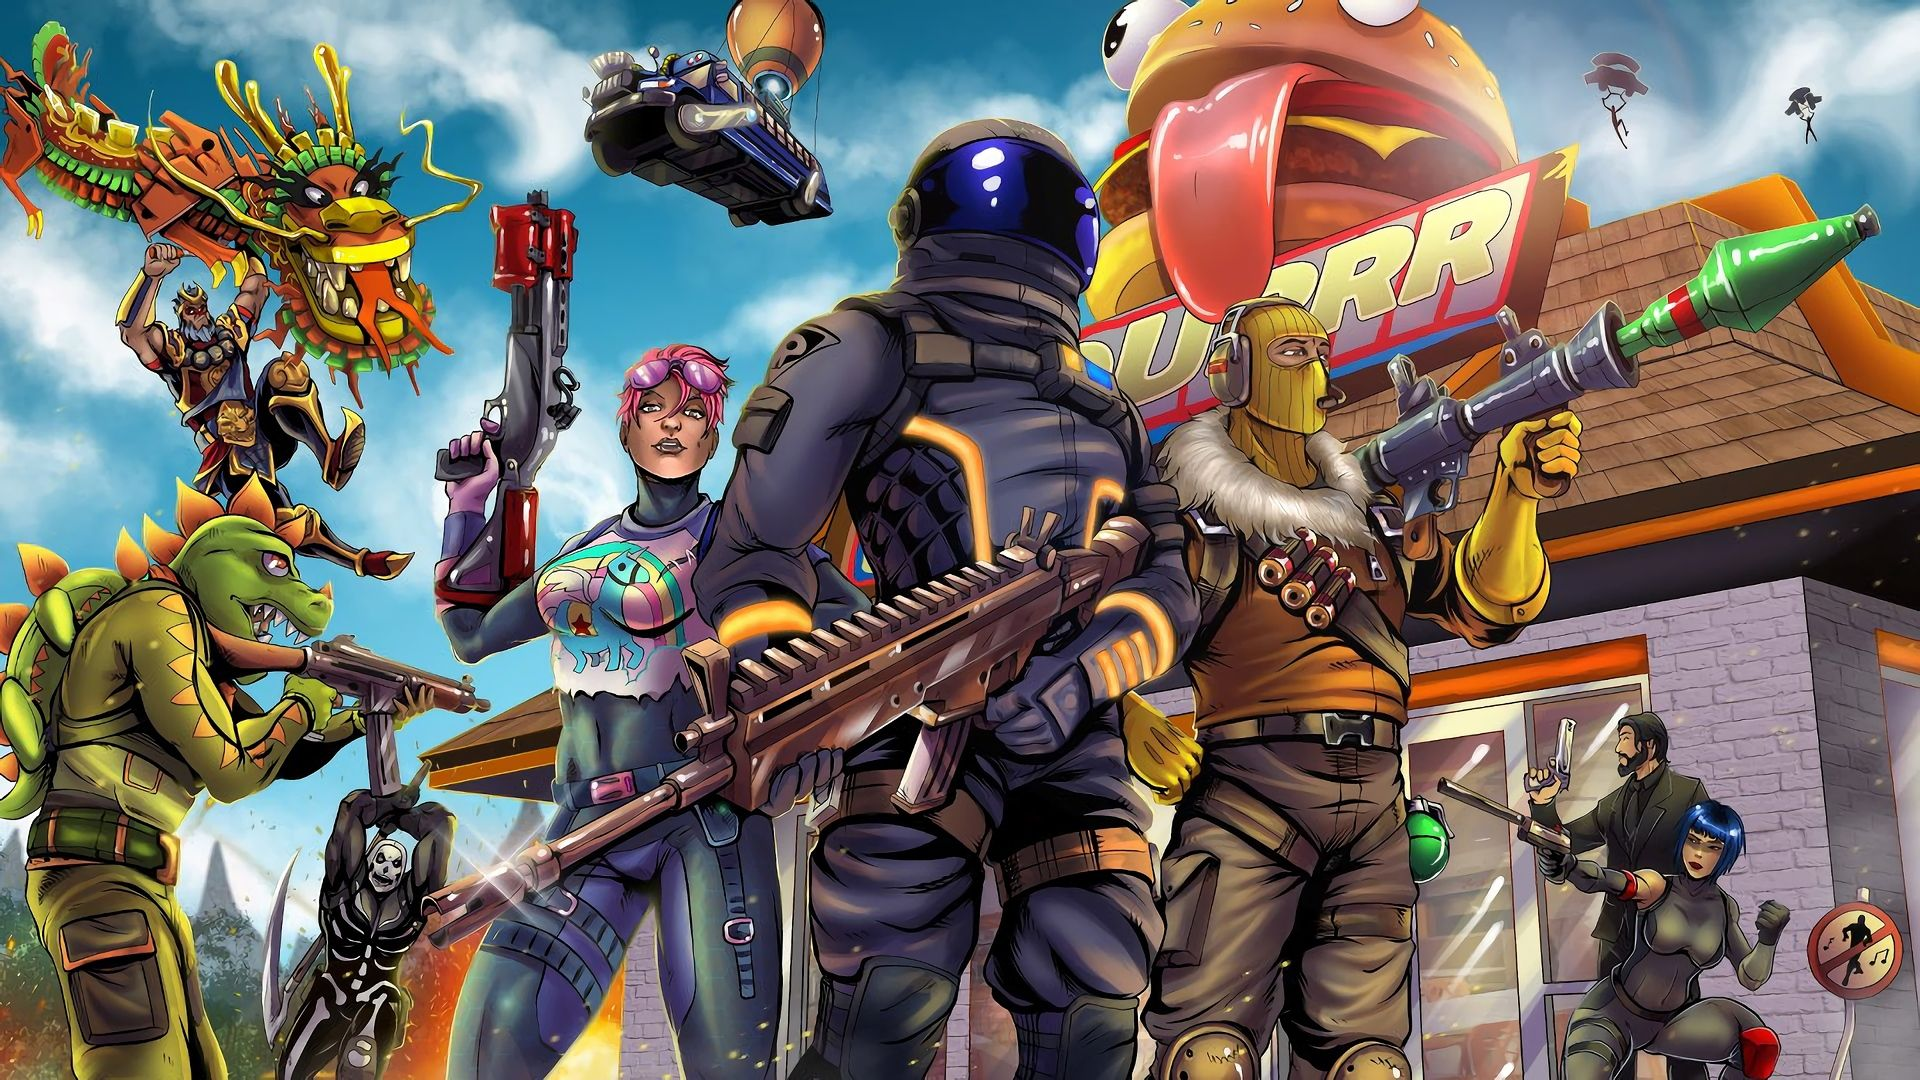 1920x1080 Hd Wallpaper Of Fortnite Battle Royale Video Game Art Dark